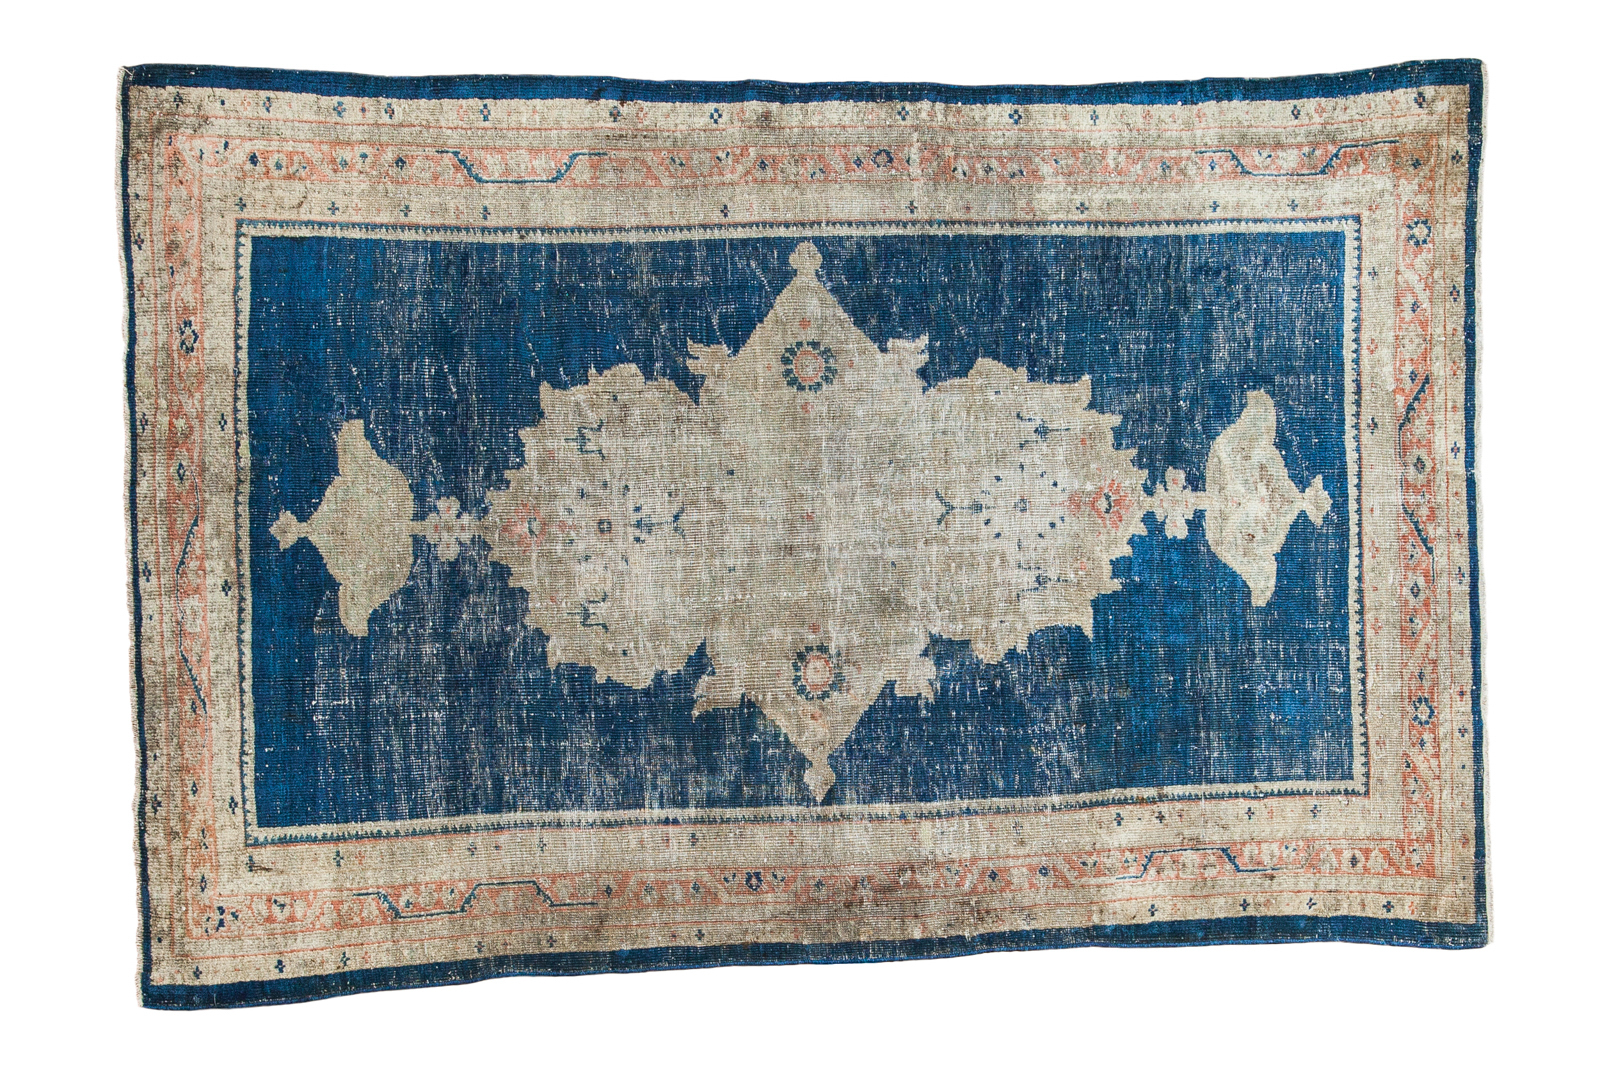 Antique Turkish Rug 1772 Westchester Ny Rugs